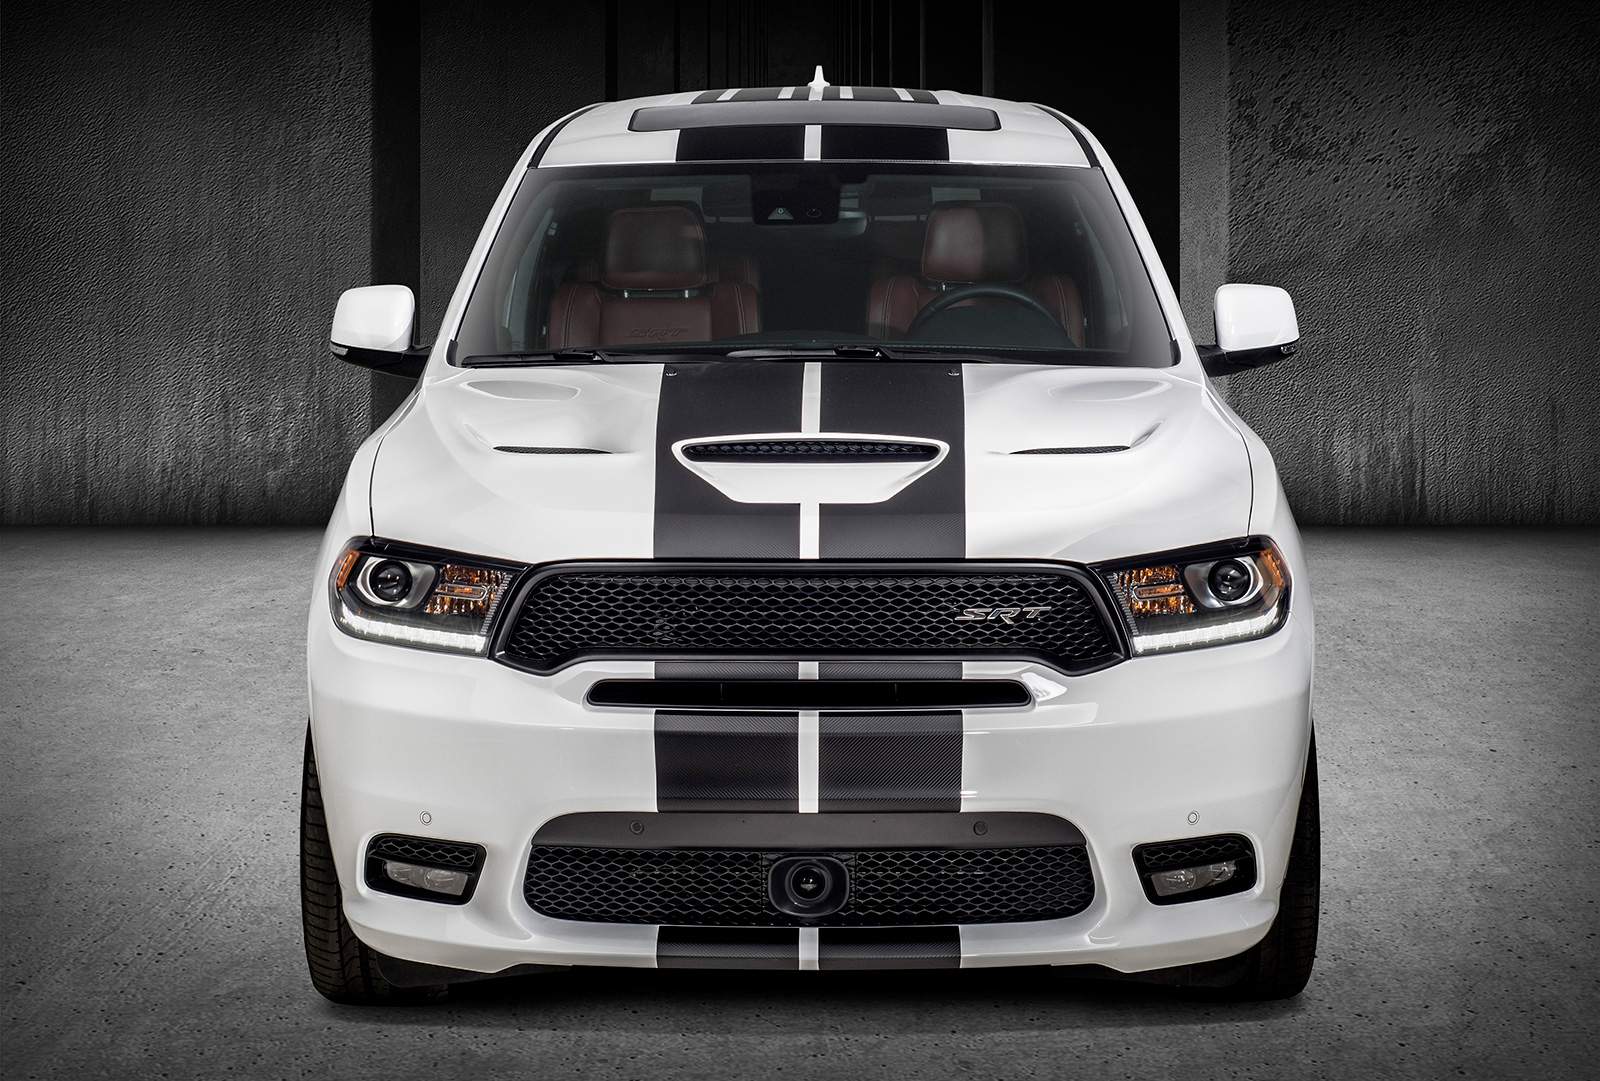 You Can Now Get Stripes And Carbon Fiber For Your Dodge